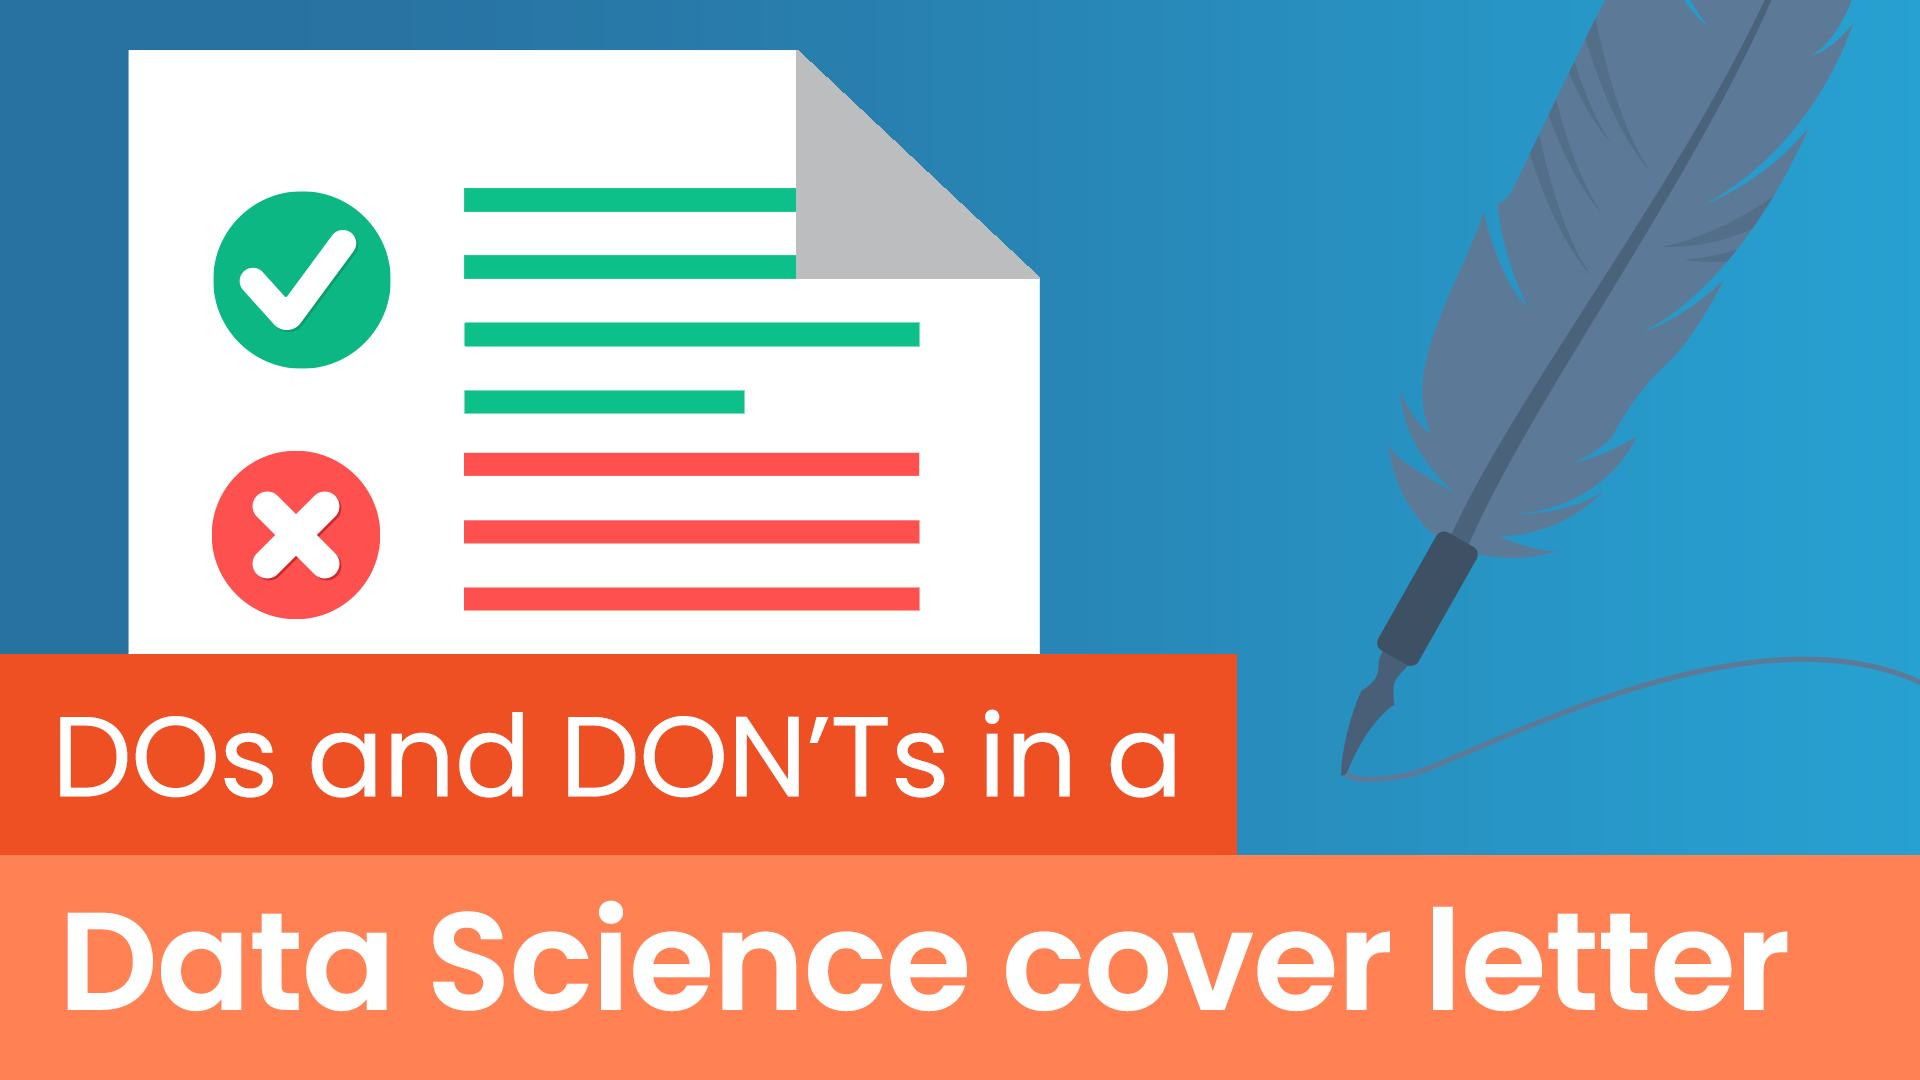 Data Science Cover Letter Dos and Don'ts